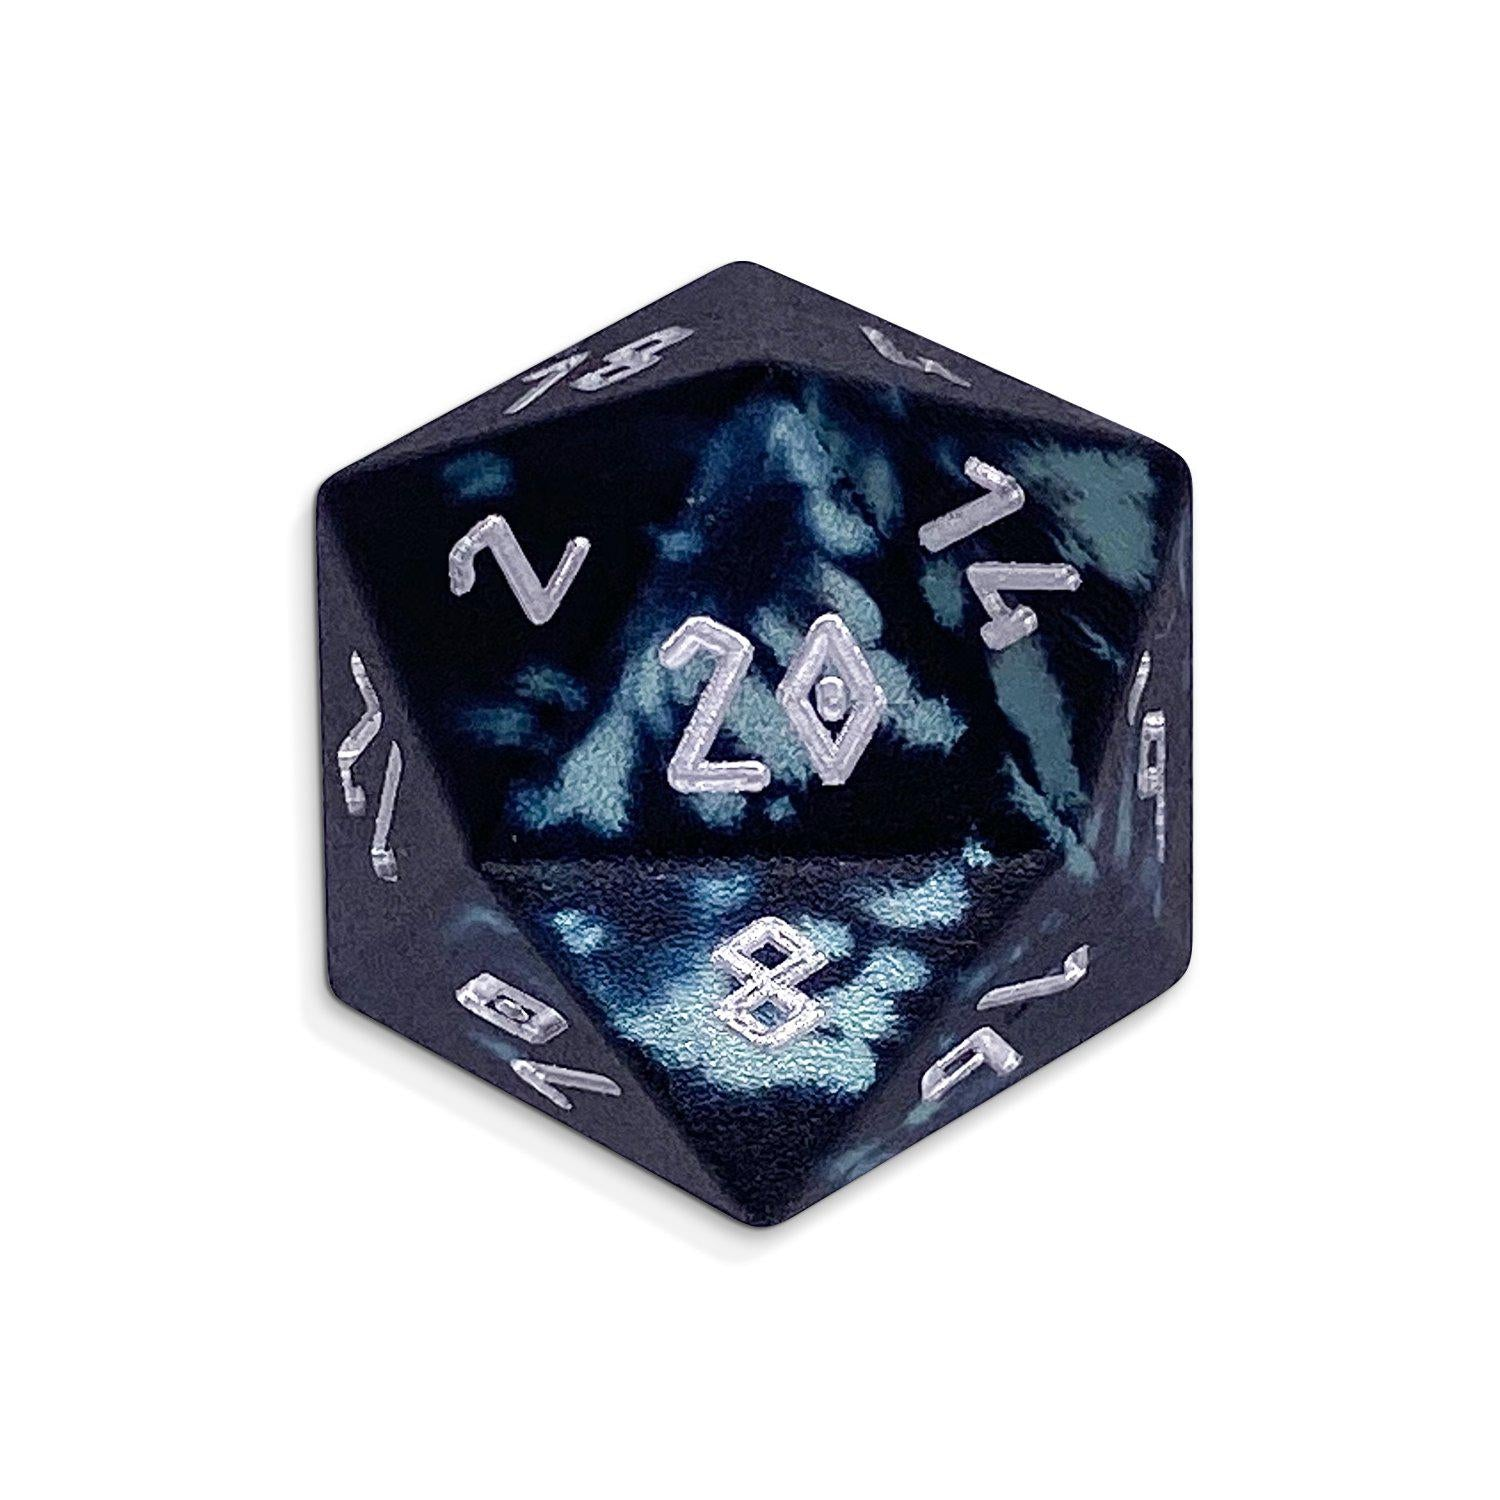 Single Wondrous Dice® D20 in Trolls Blood by Norse Foundry® 6063 Aircraft Grade Aluminum